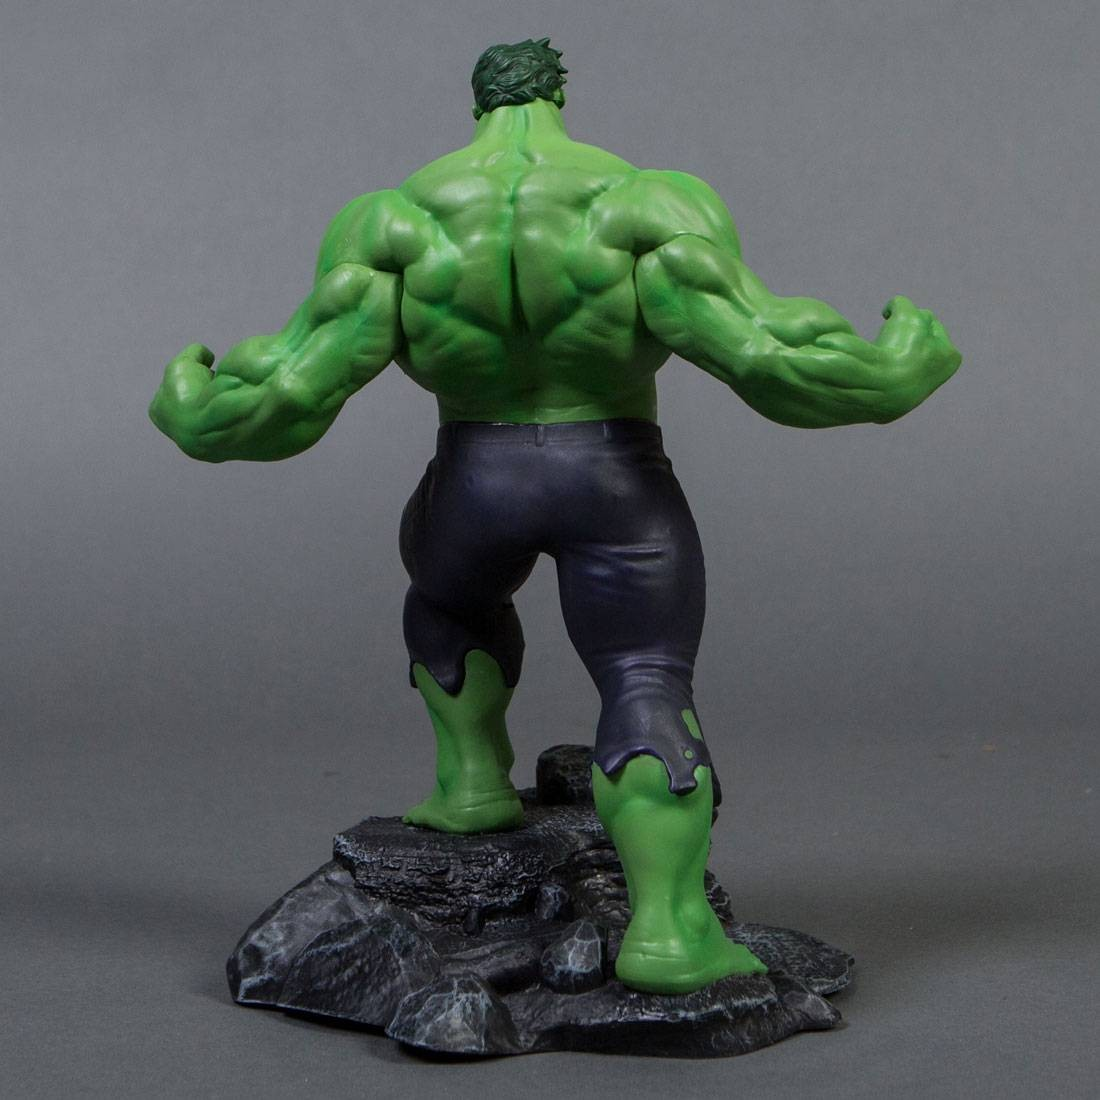 Diamond Select Toys Marvel Gallery Hulk Pvc Figure Green